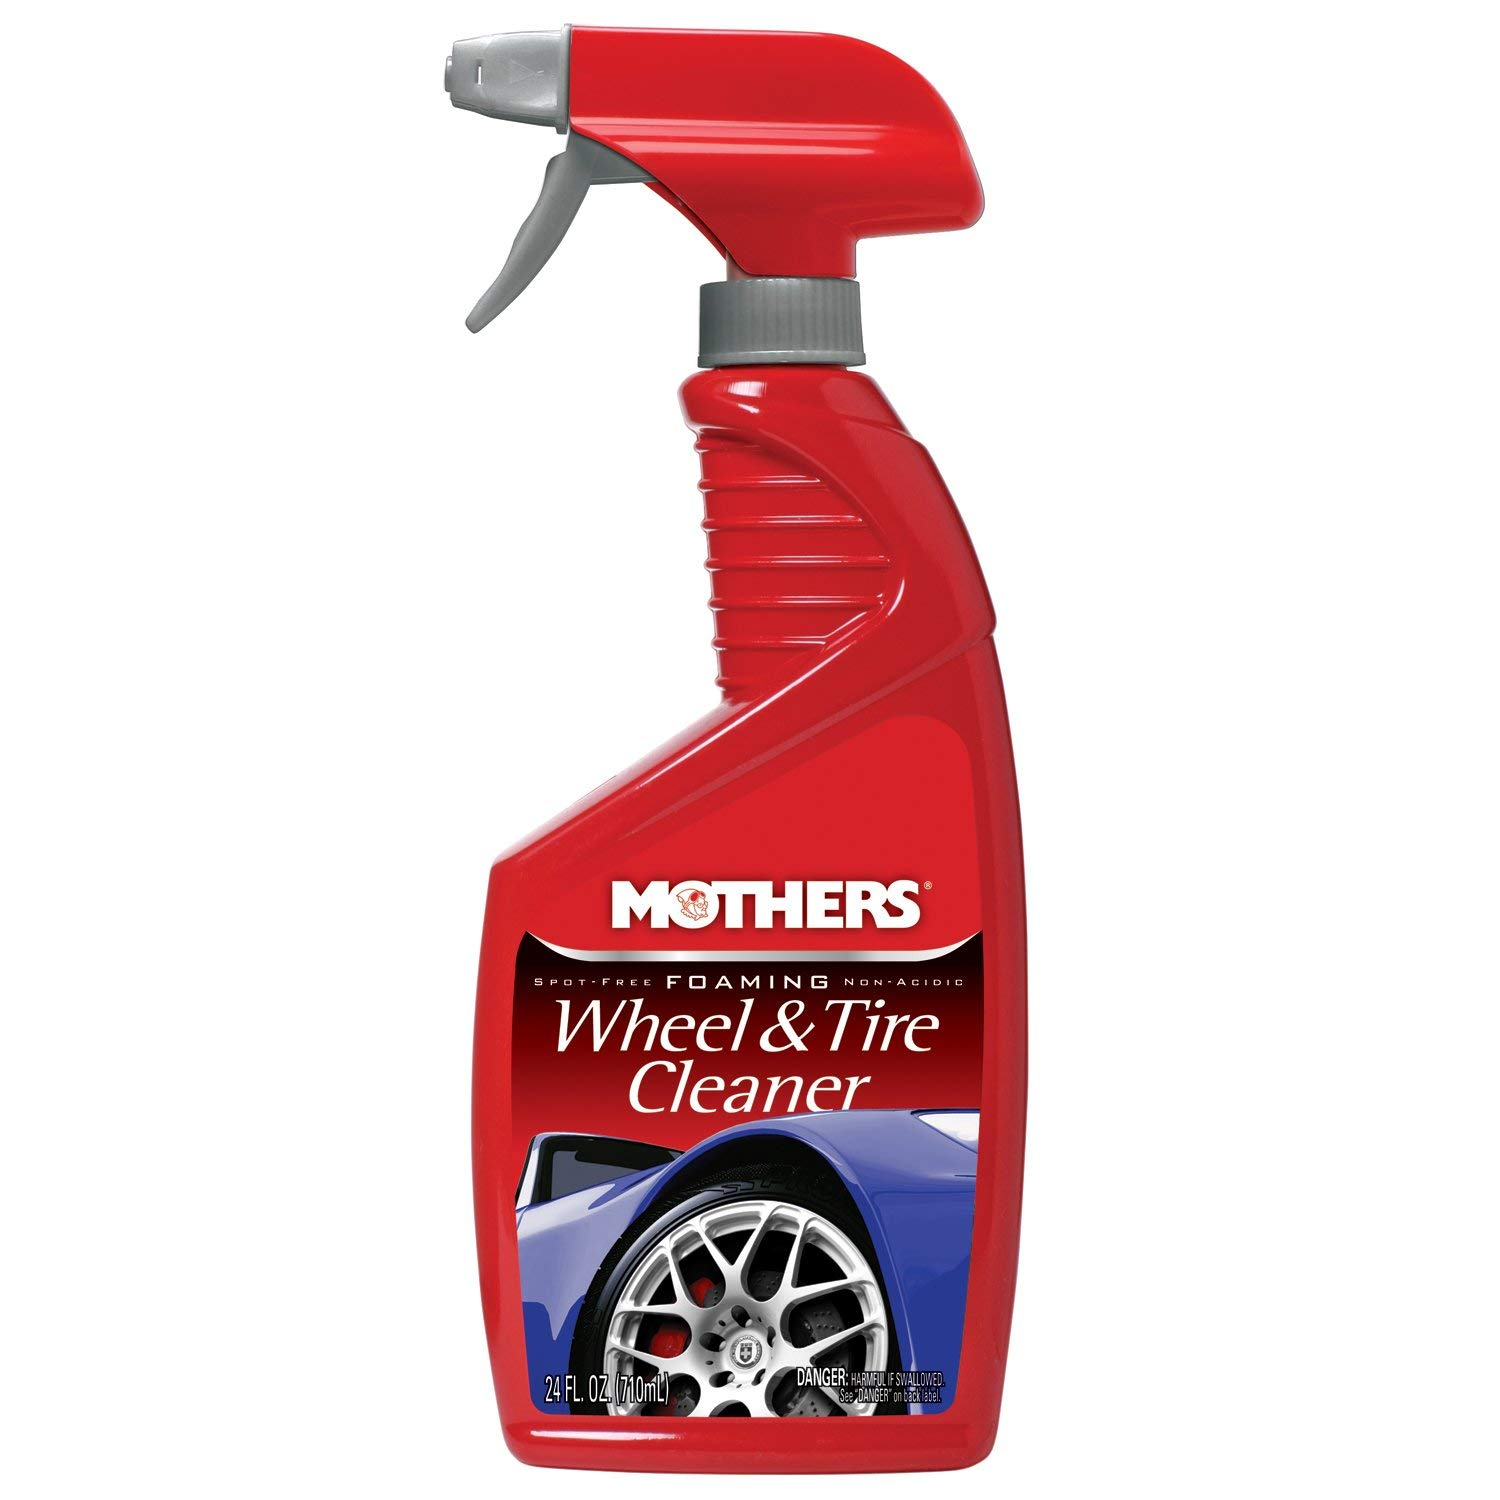 Wheel & Tire Cleaner Foaming  Mothers